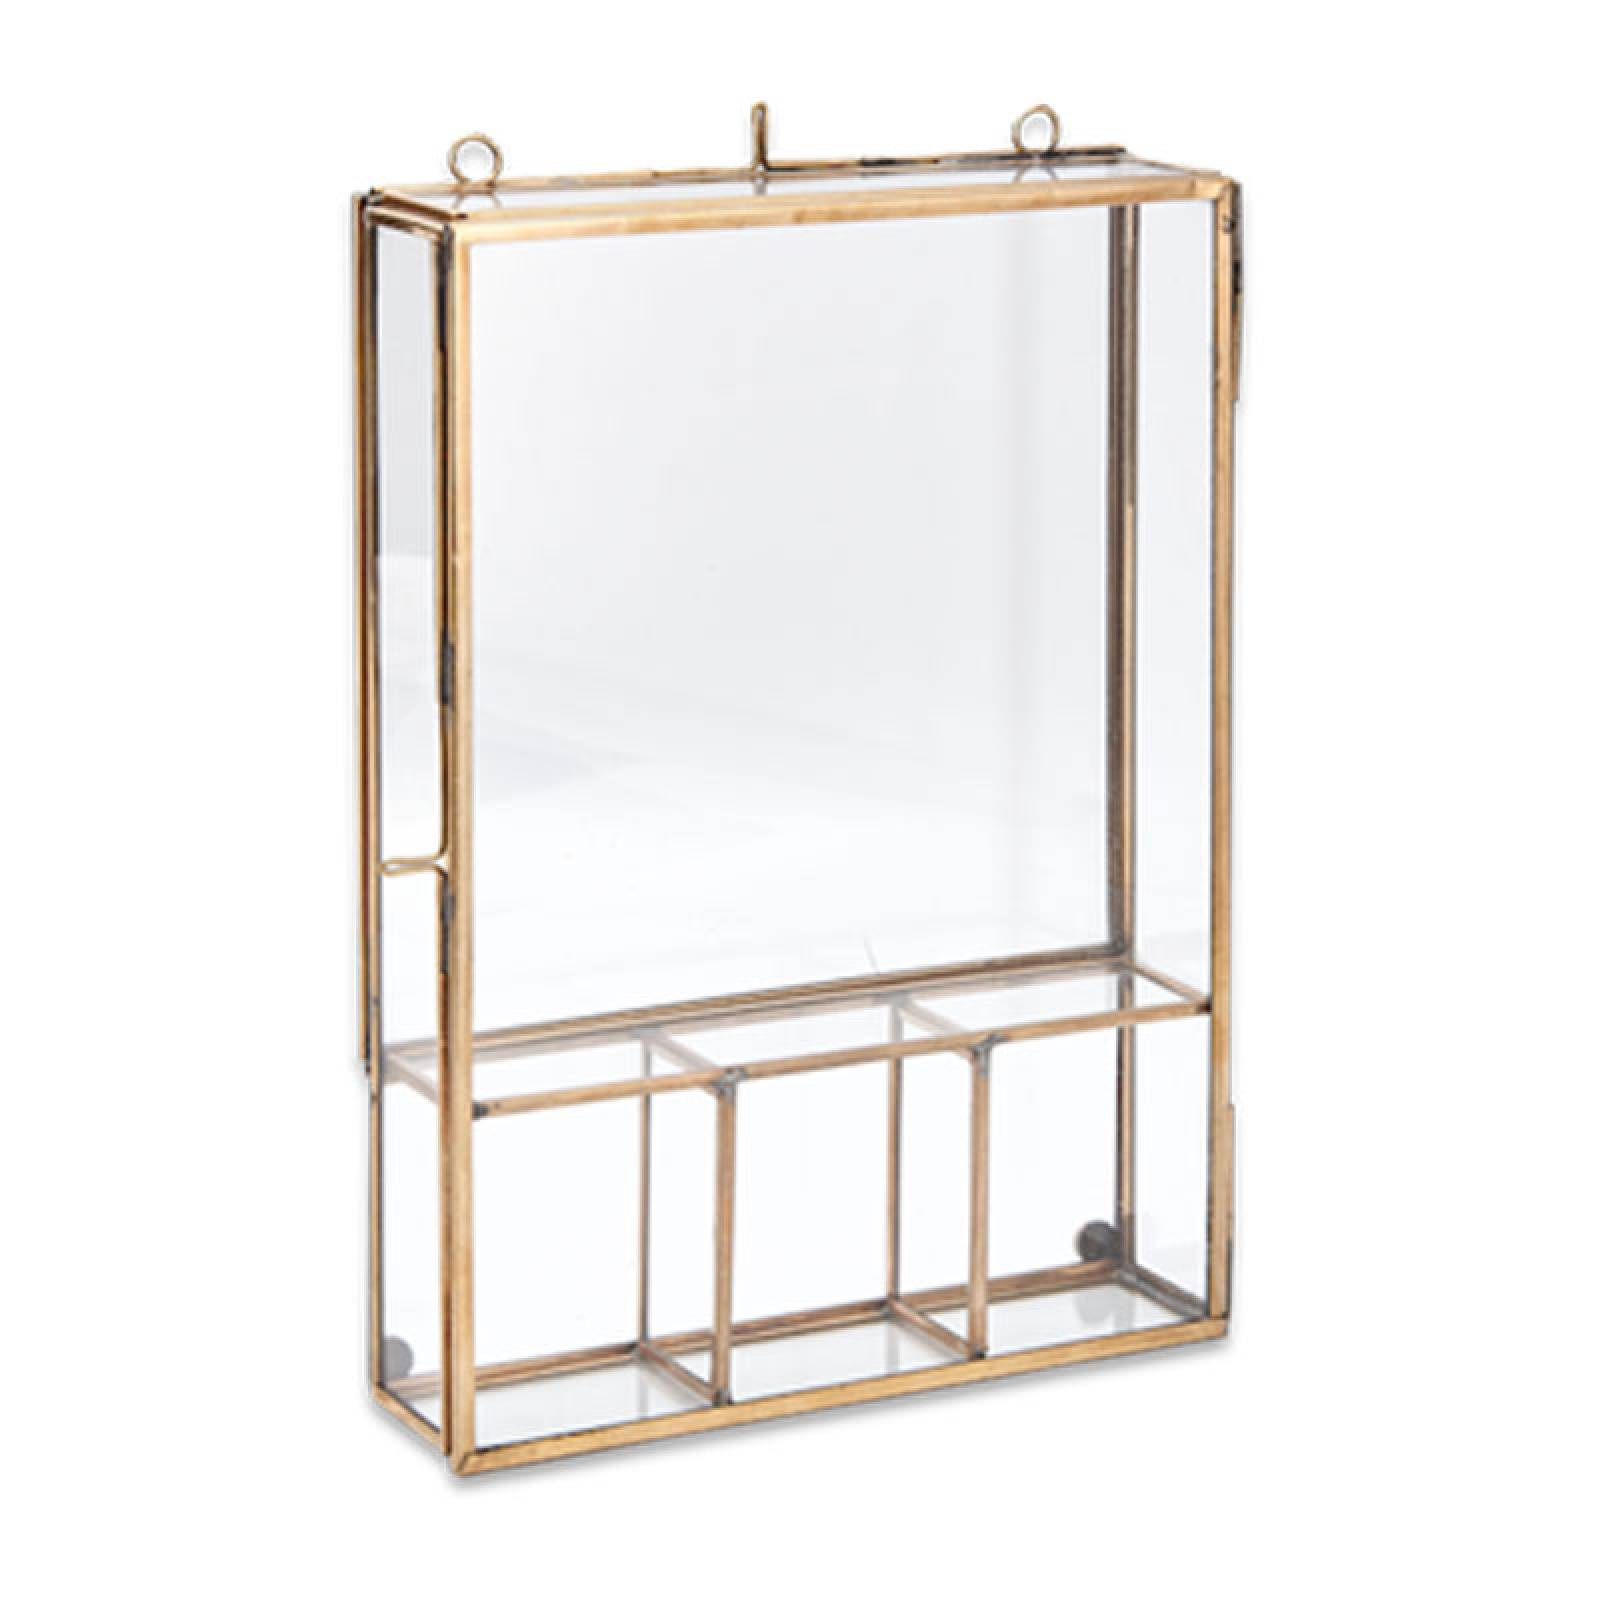 Kiko Brass And Glass Wall Mounting Photo Box thumbnails